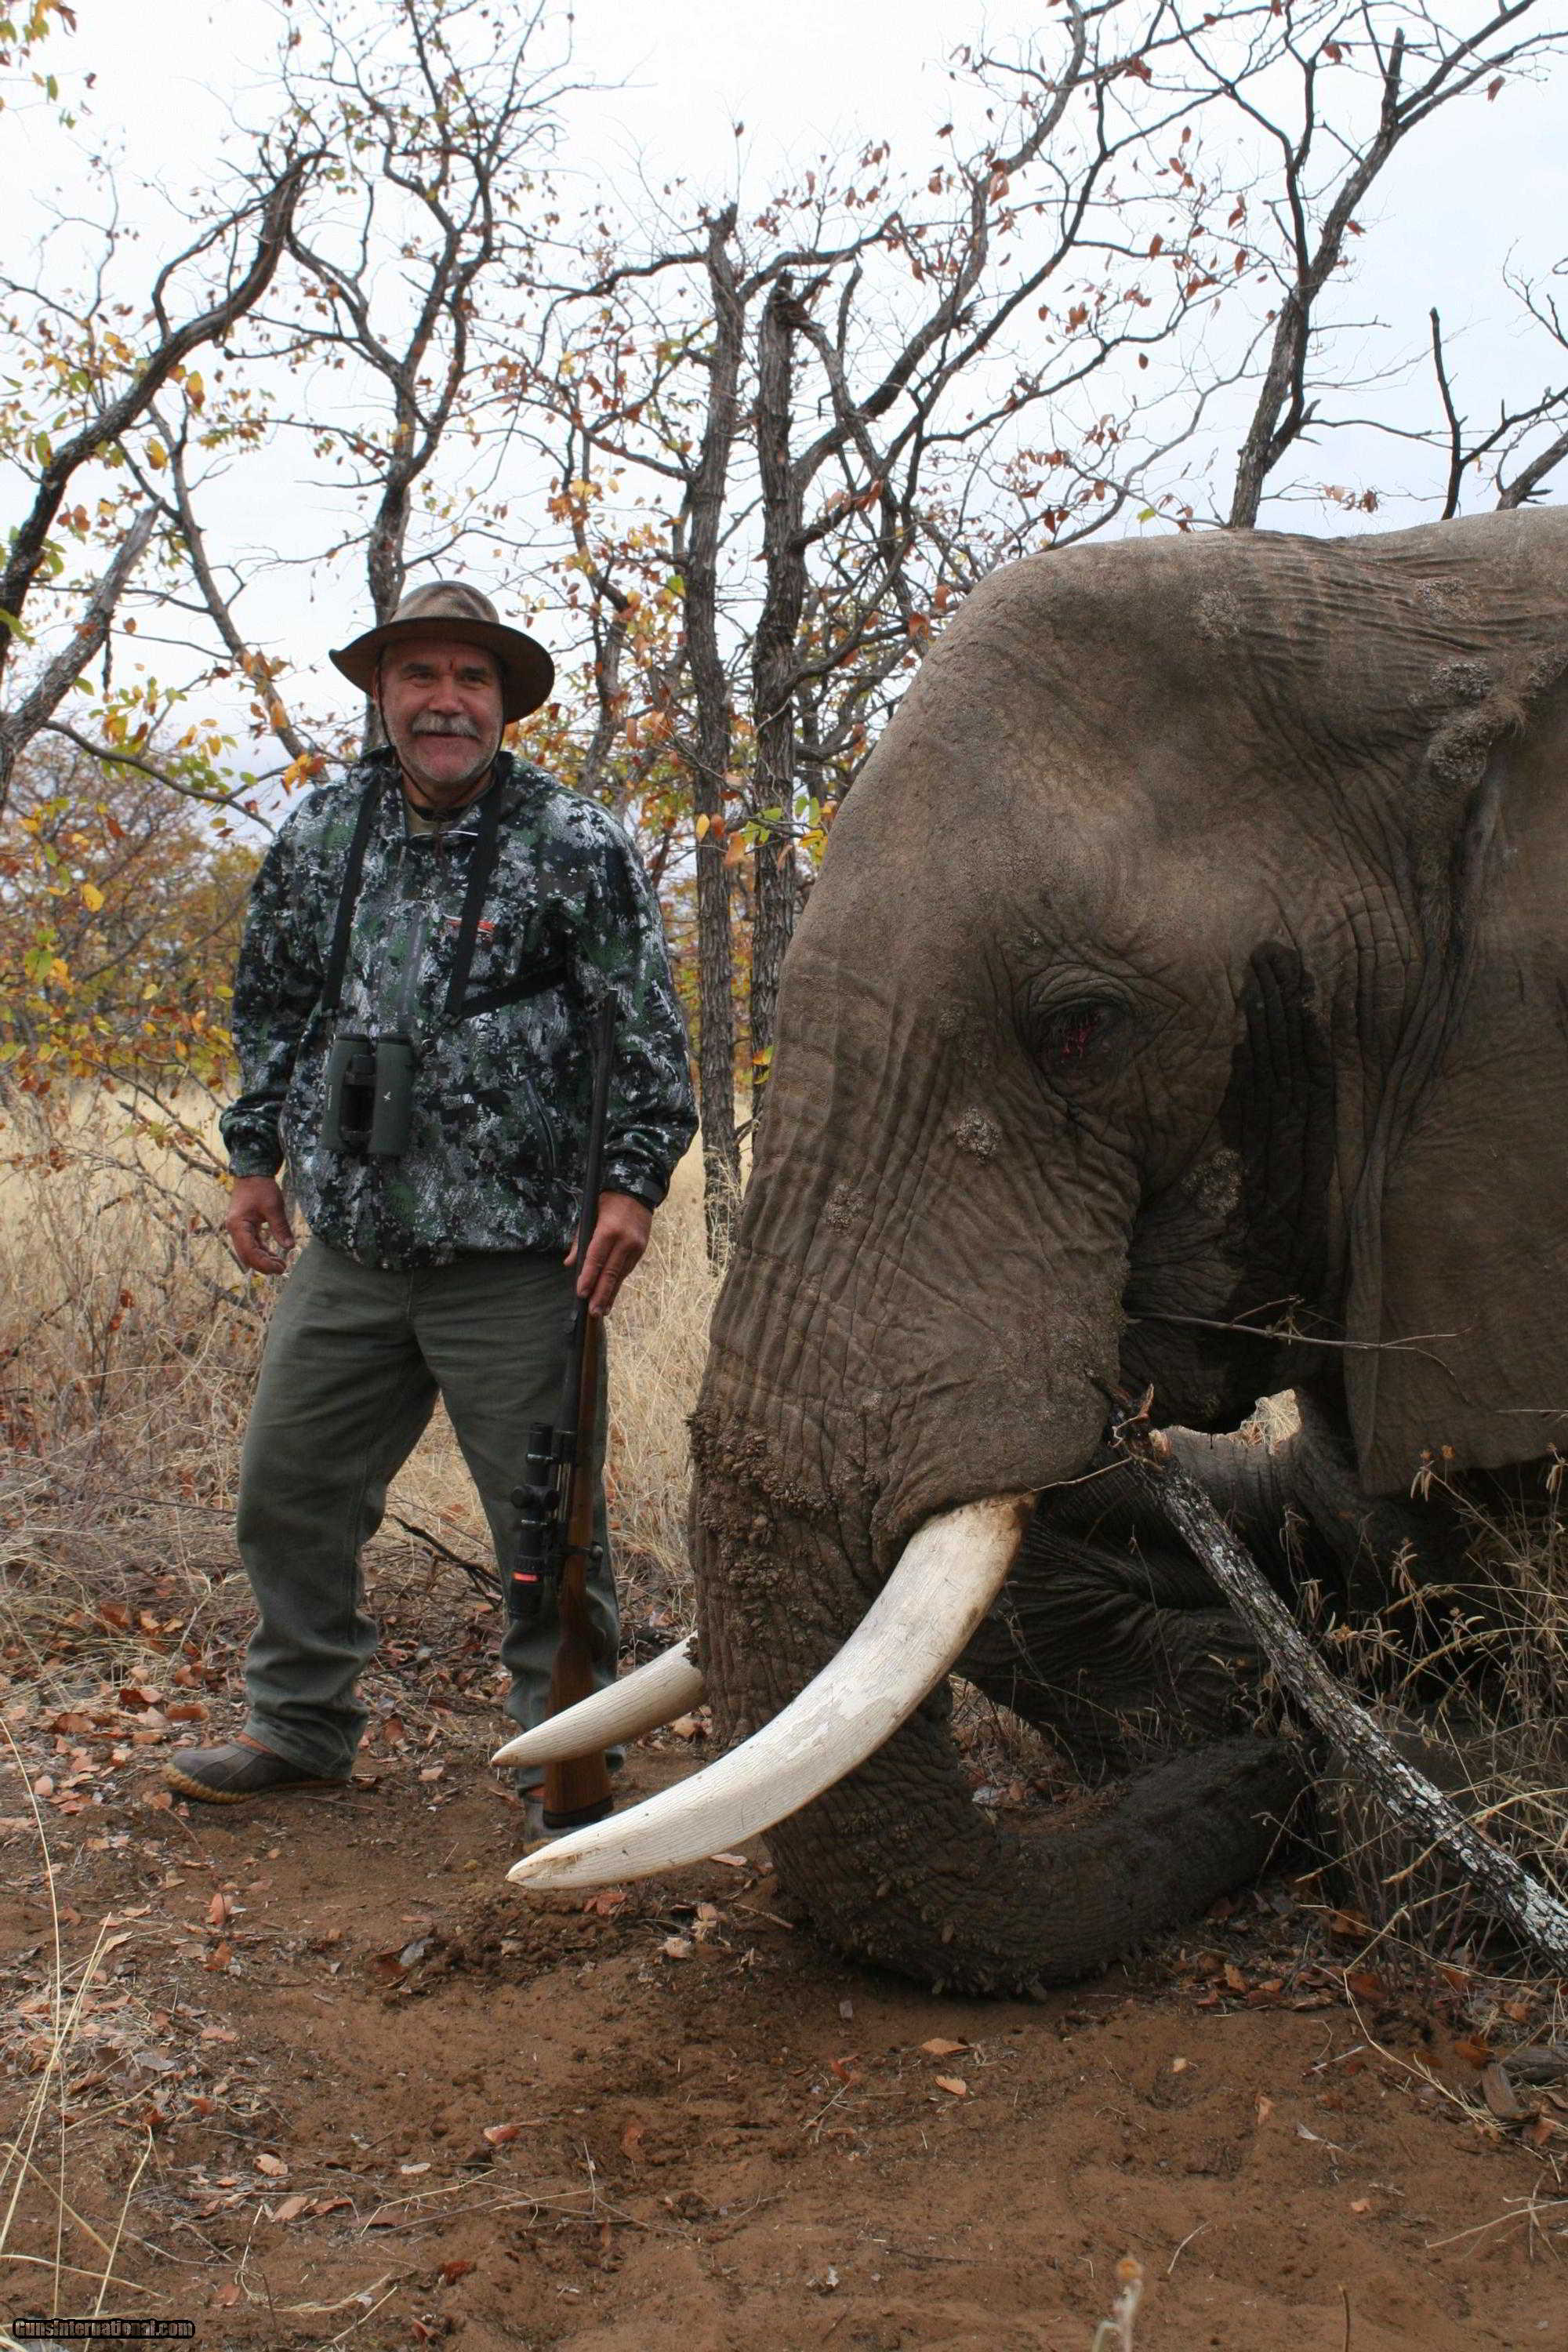 TROPHY BULL ELEPHANT HUNTING IMPORTABLE TO THE USA